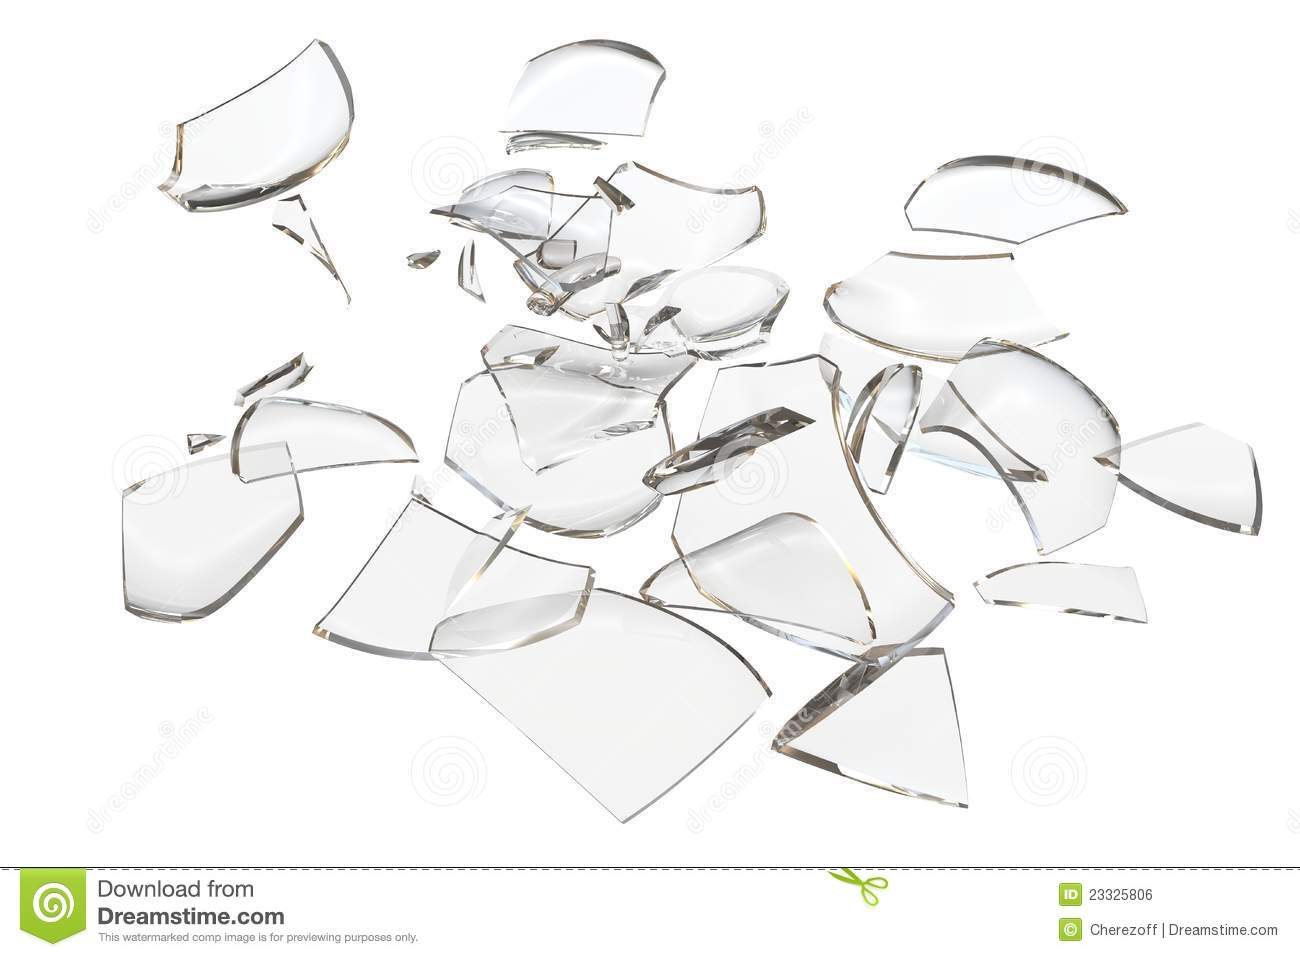 Fragments clipart.